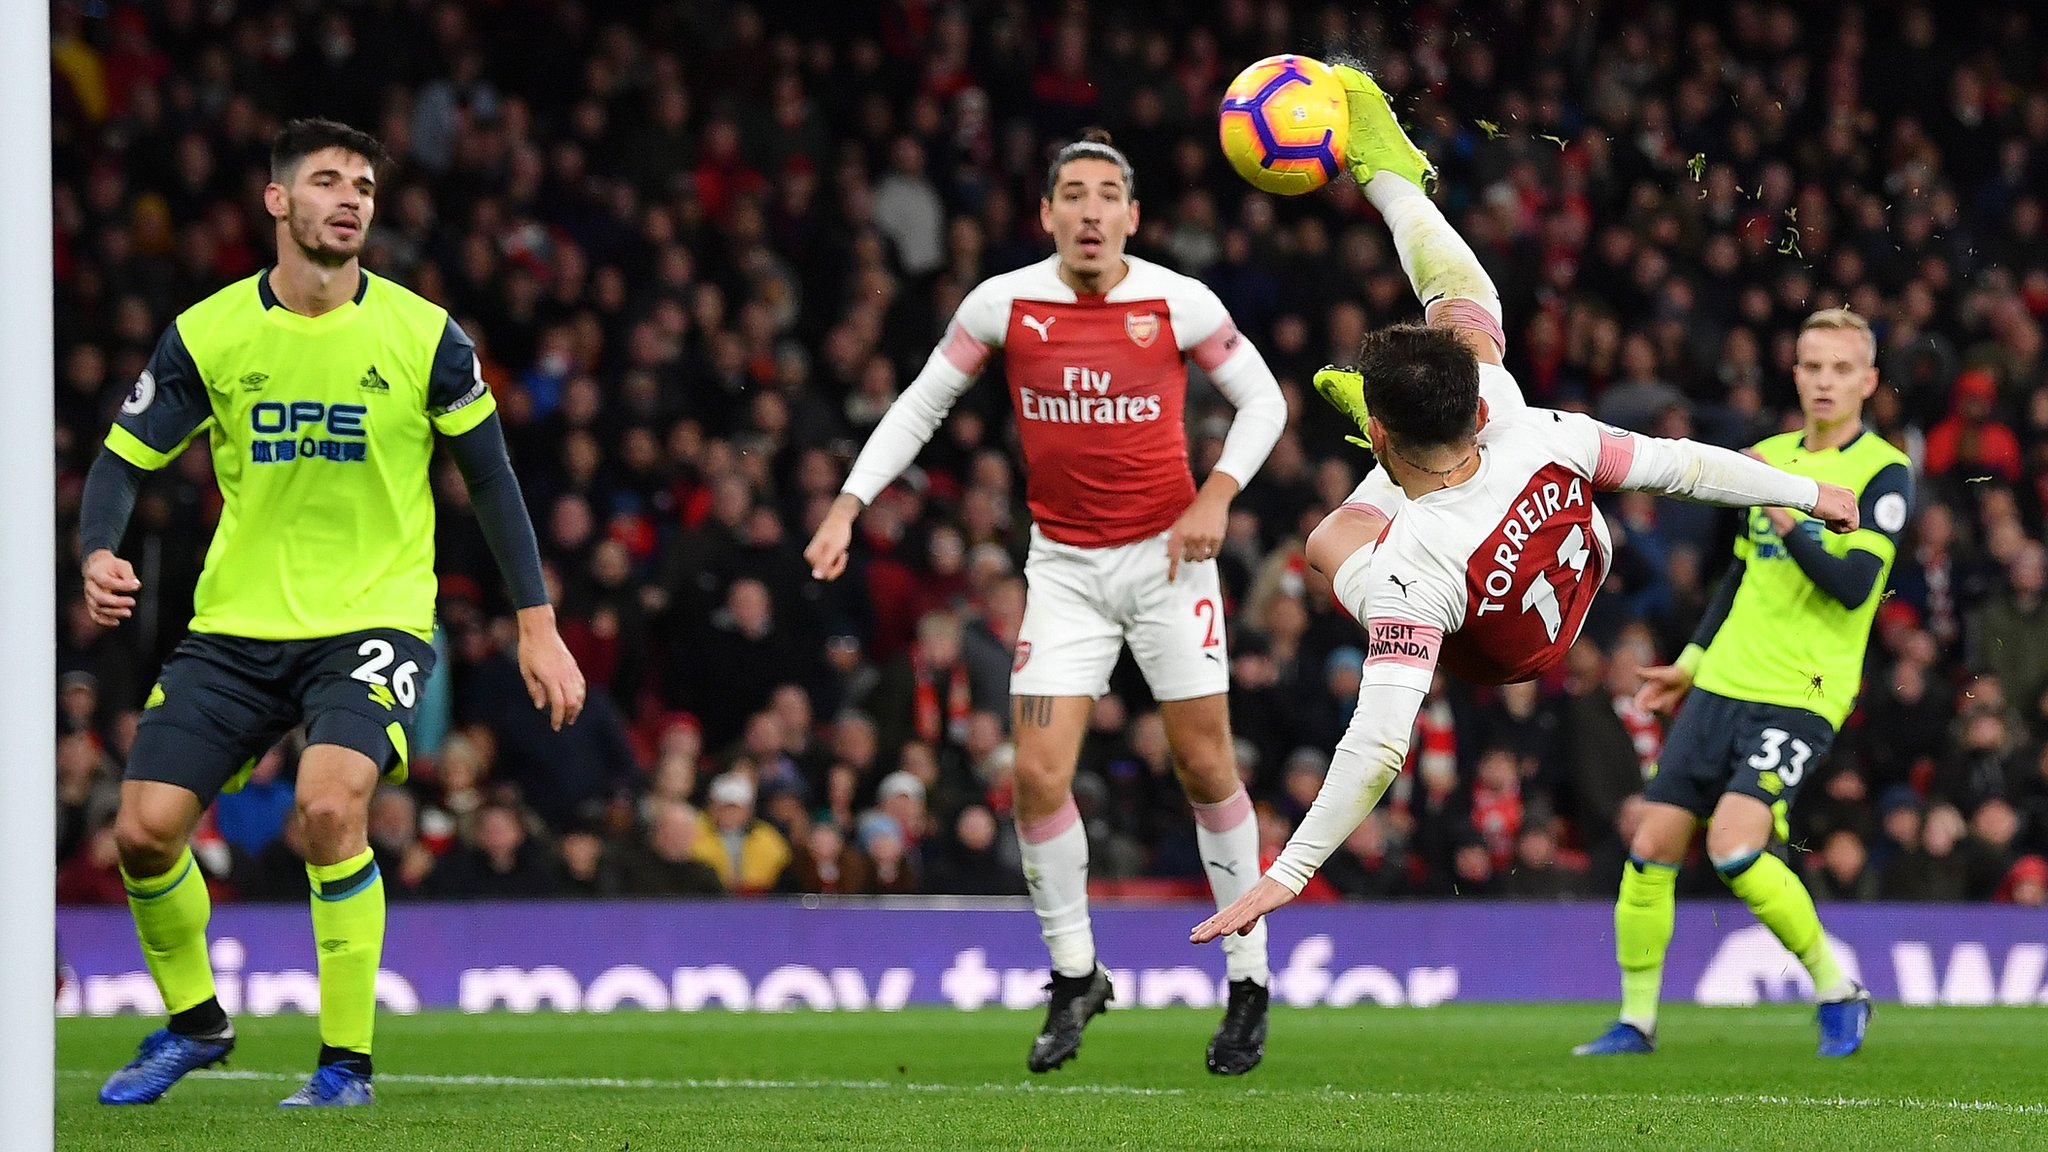 Arsenal 1-0 Huddersfield Town: Lucas Torreira's late stunner sees hosts overcome Terriers